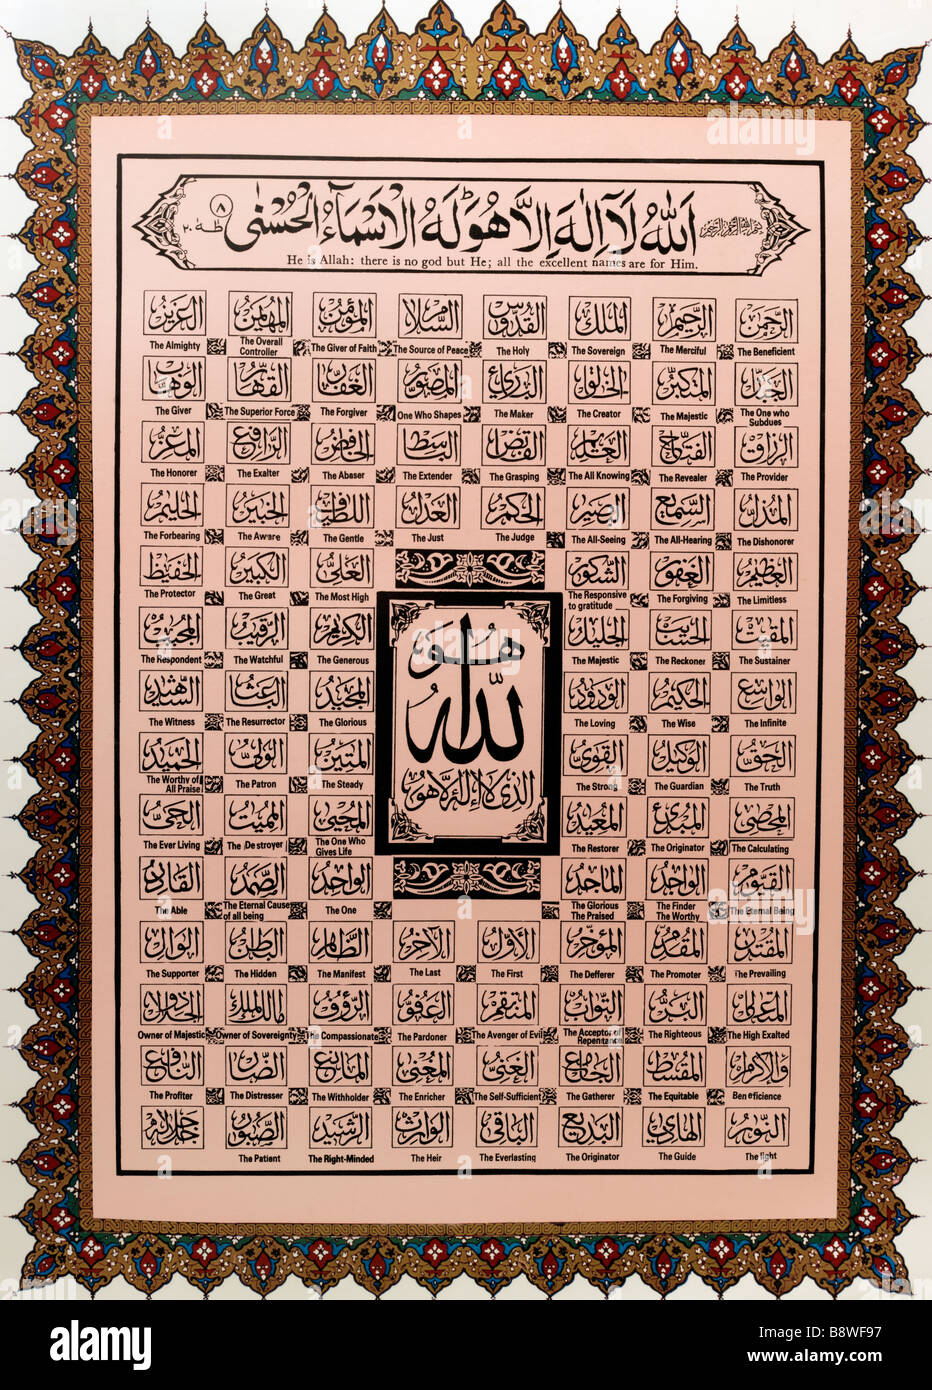 Allah 99 names photo